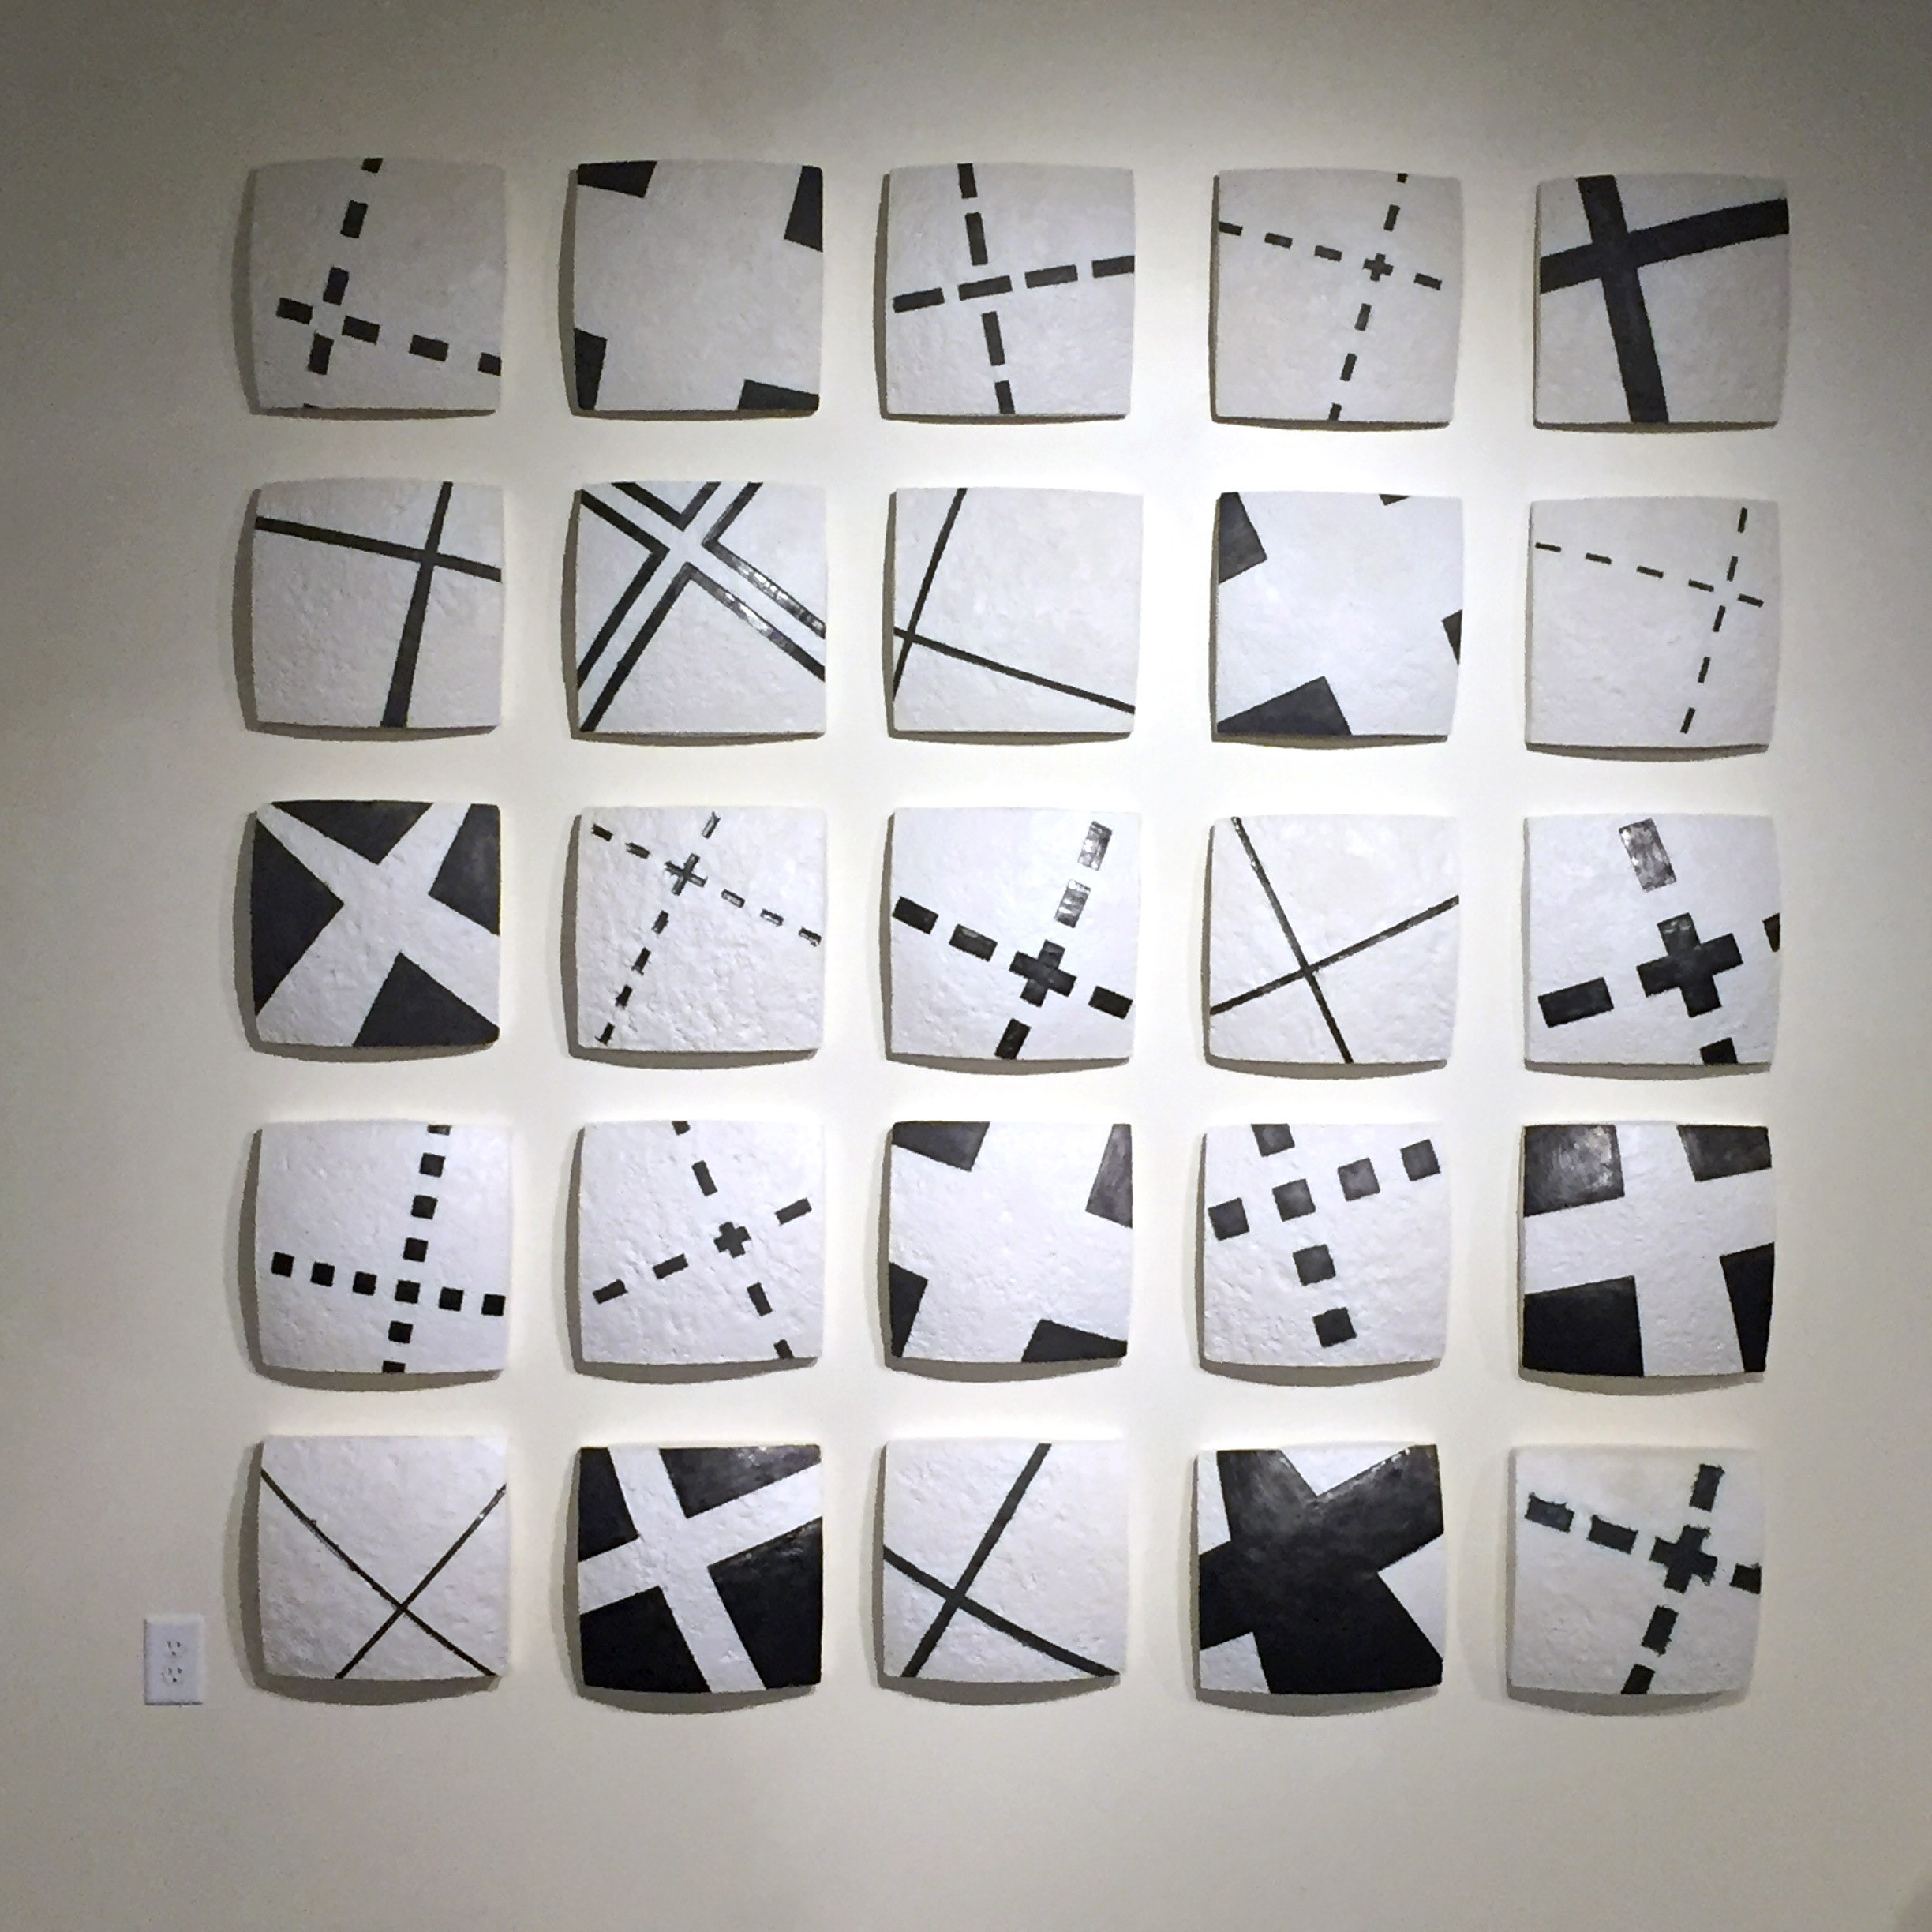 Group of 25 series X ceramic tablets by Gregor Turk